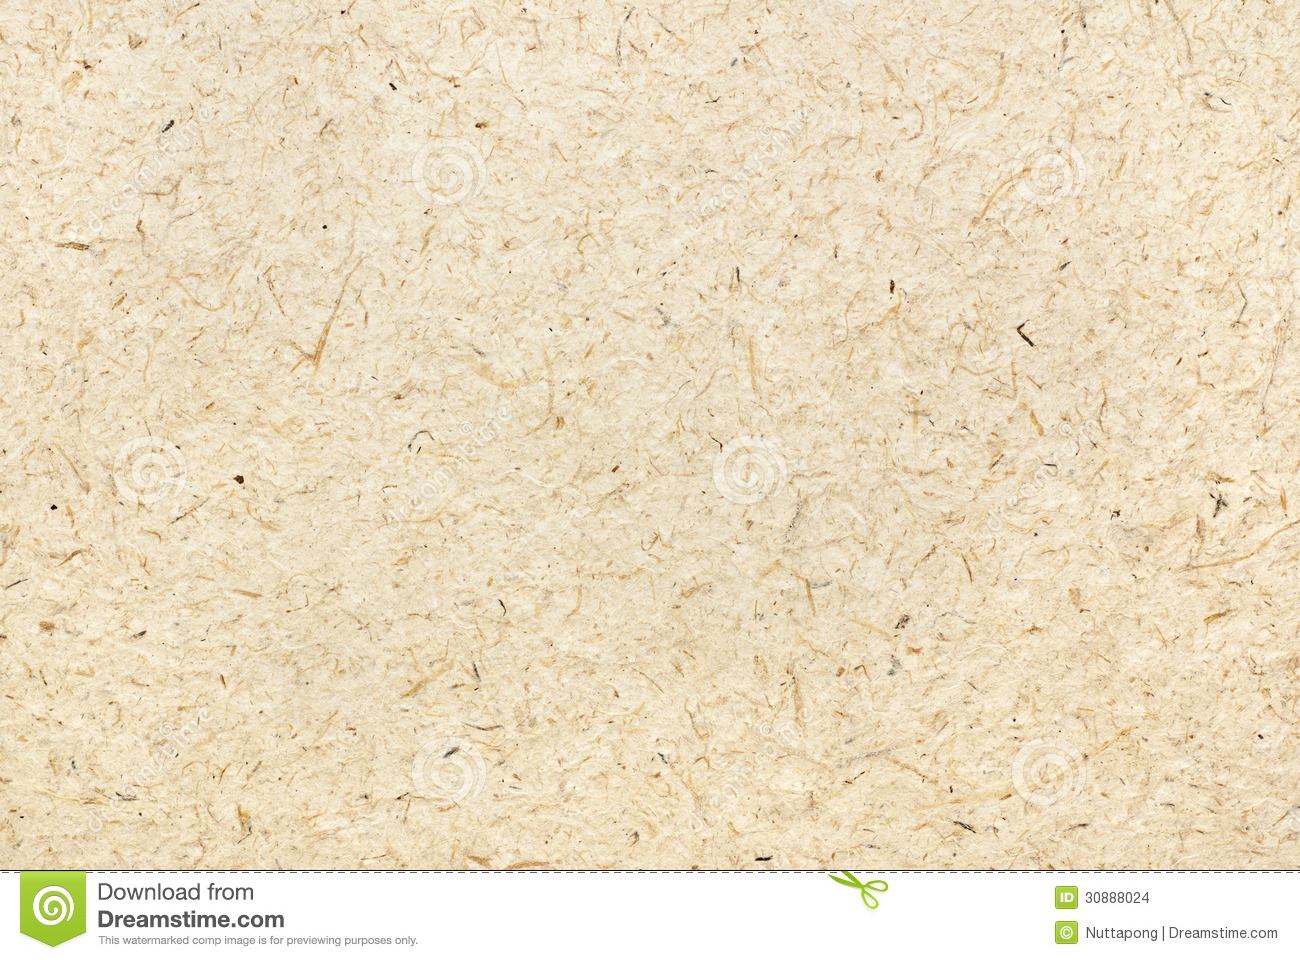 Mulberry paper stock photo. Image of paper, manuscript ...